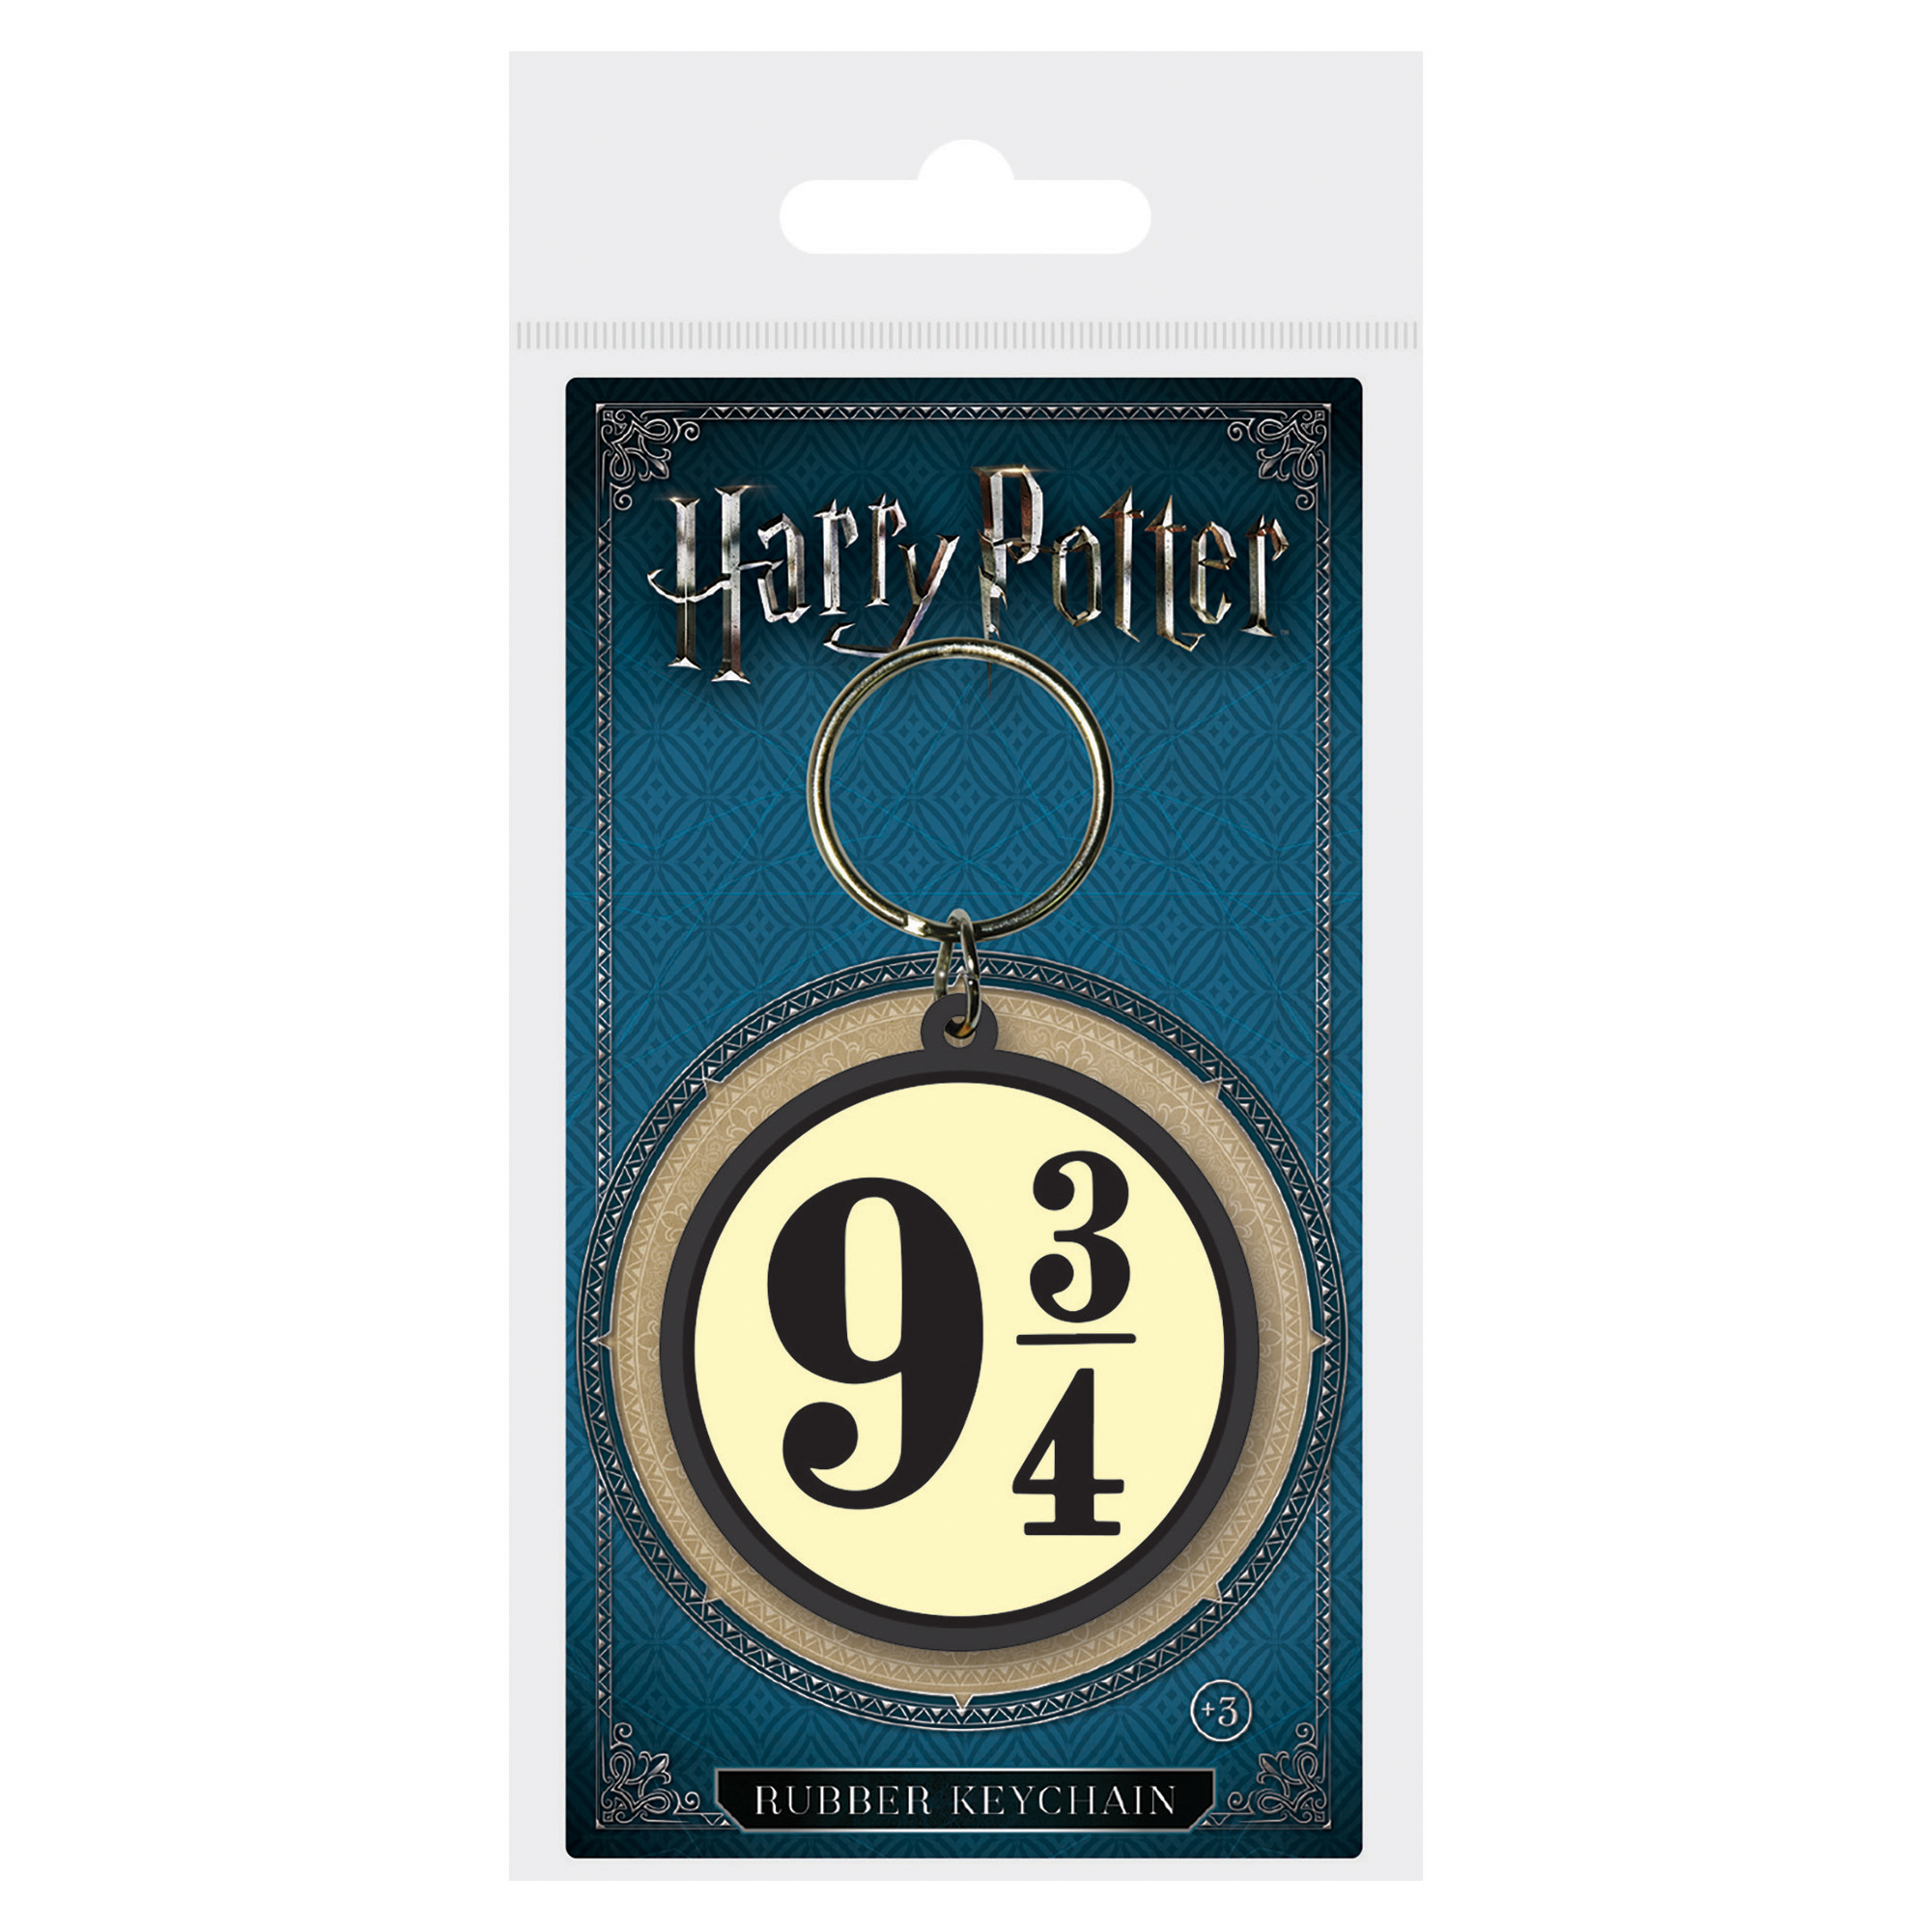 Harry Potter 9 3/4 Rubber keyring